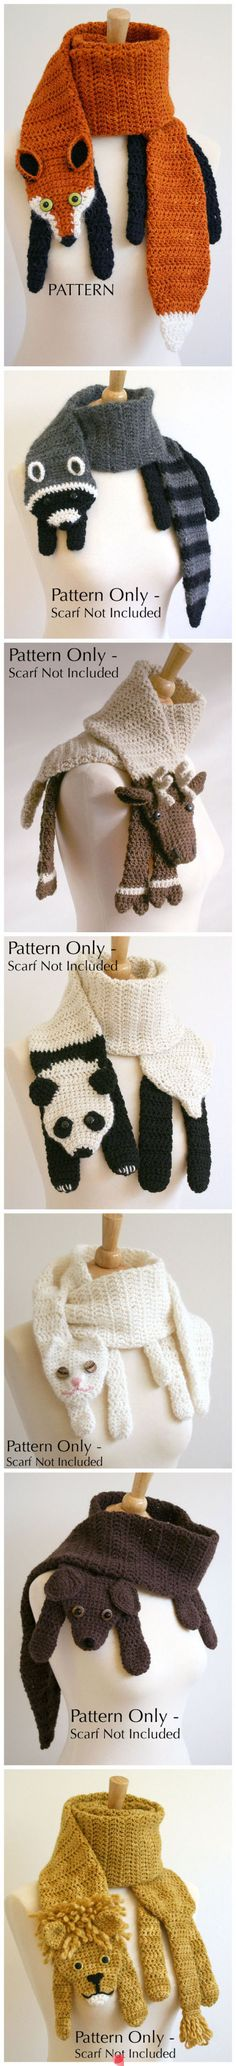 Fox Scarf Crochet Pattern by Bees Knees Knitting. pattern for fox only $6.00; booklet with all 11 animal scarf patterns $45.00. On Ravelry at http://www.ravelry.com/patterns/library/fox-scarf-crochet-pattern